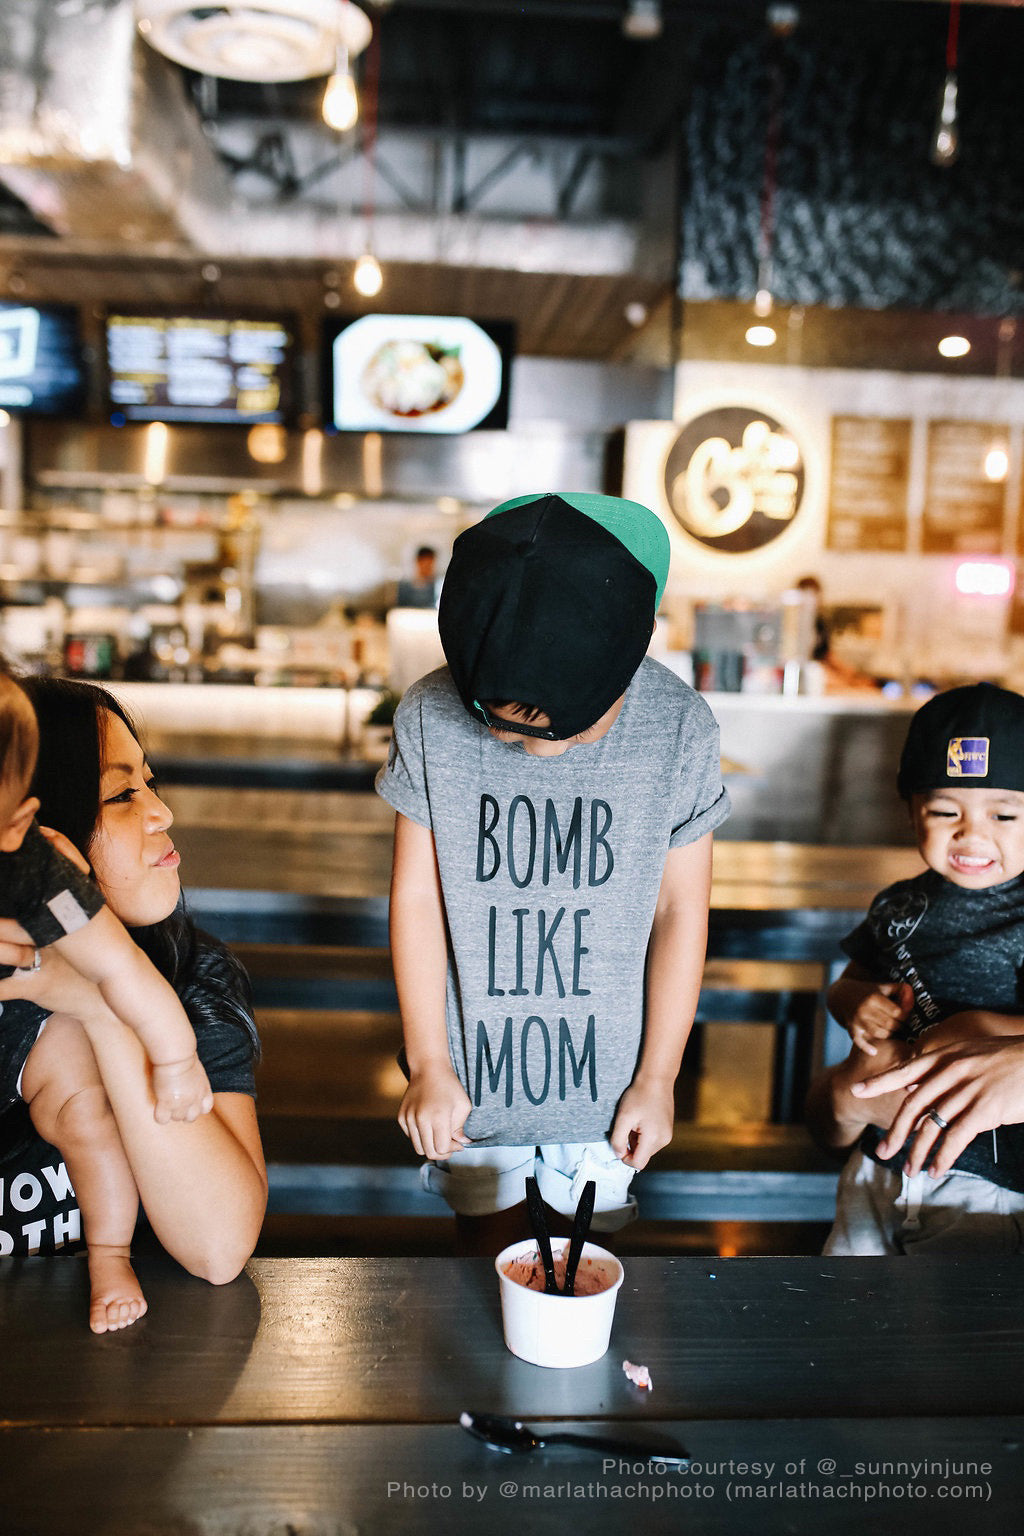 b0mb like mom kids tee: regular letters